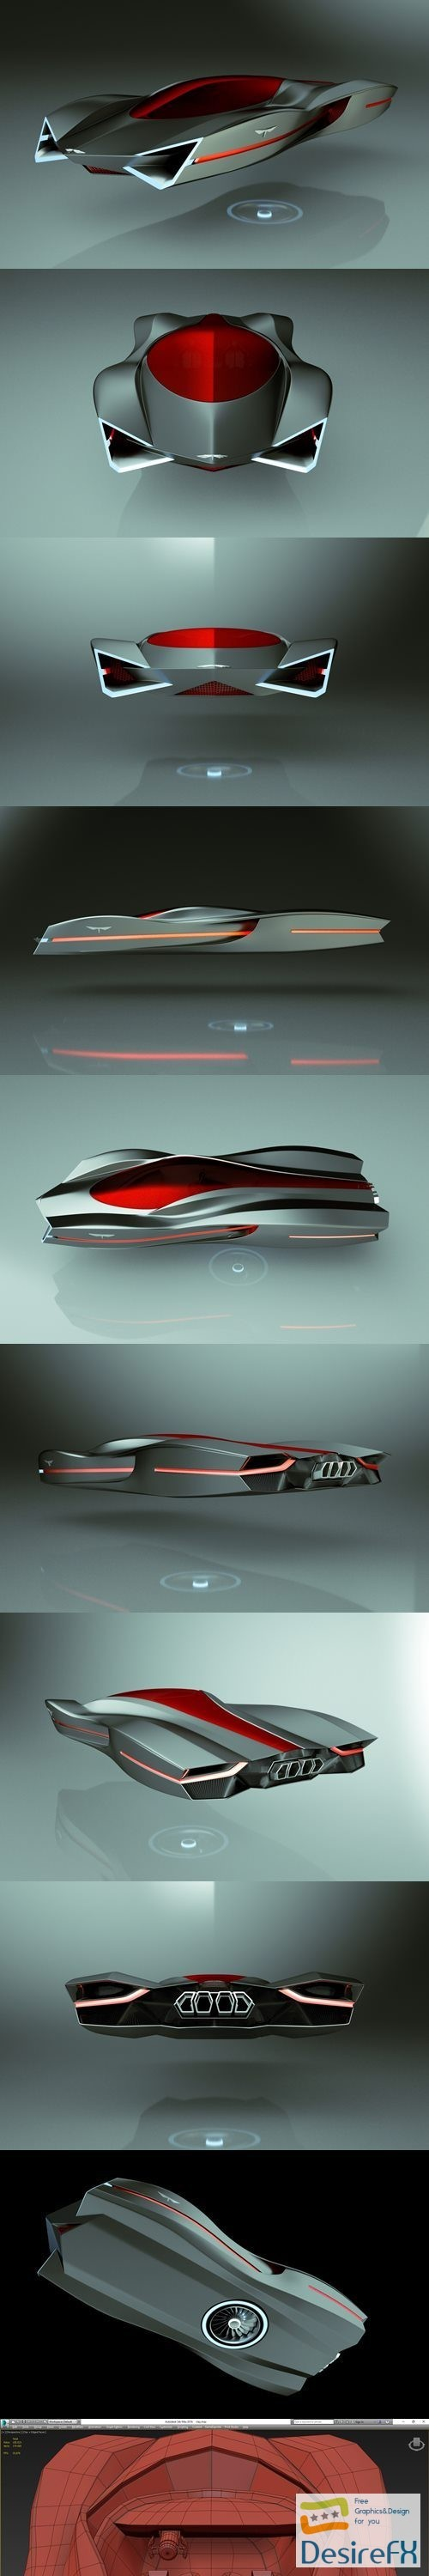 3d-models - Cheap & Cool T-Hover Car 04 3D Model